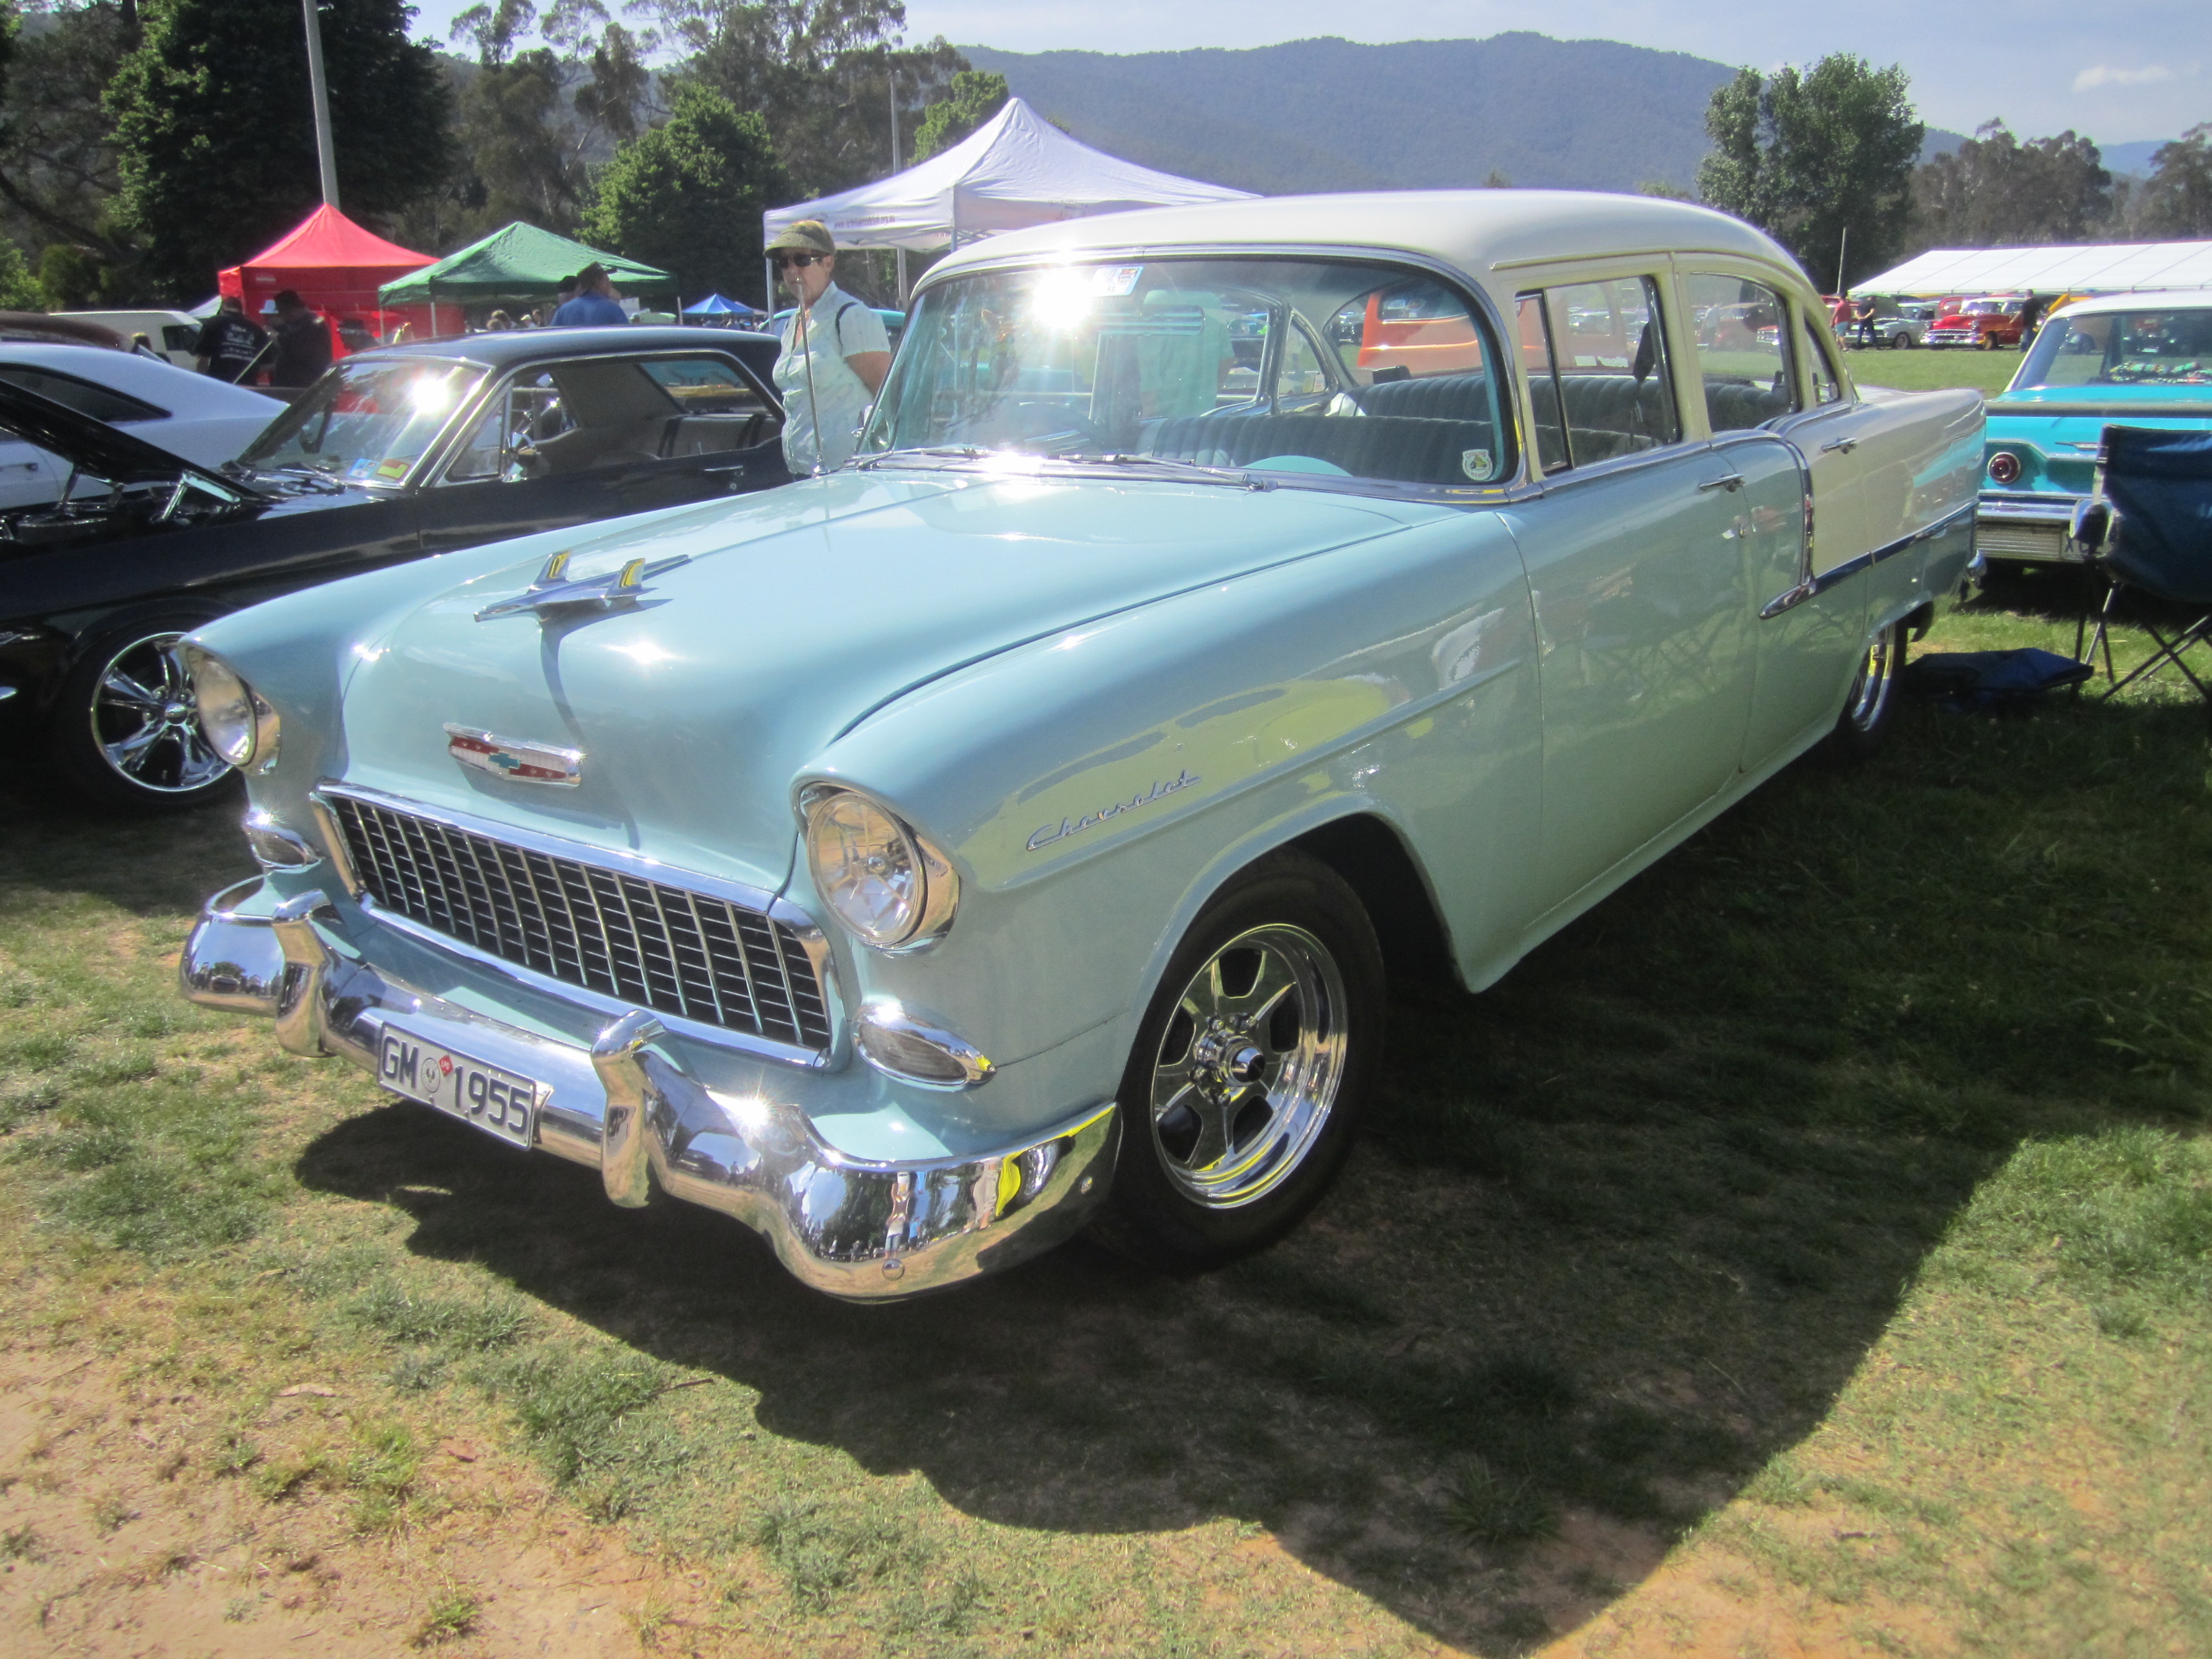 File:1955 Chevrolet 210 Sedan - Flickr - Sicnag.jpg